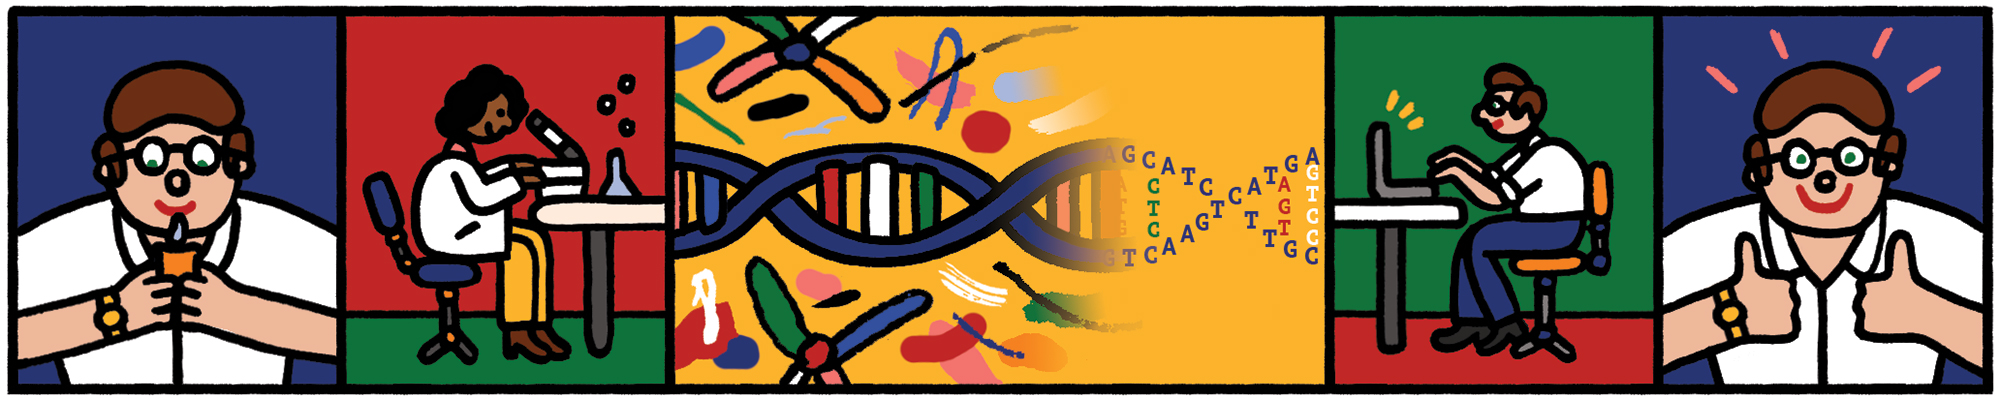 23andMe Sells Data for Drug Search - MIT Technology Review